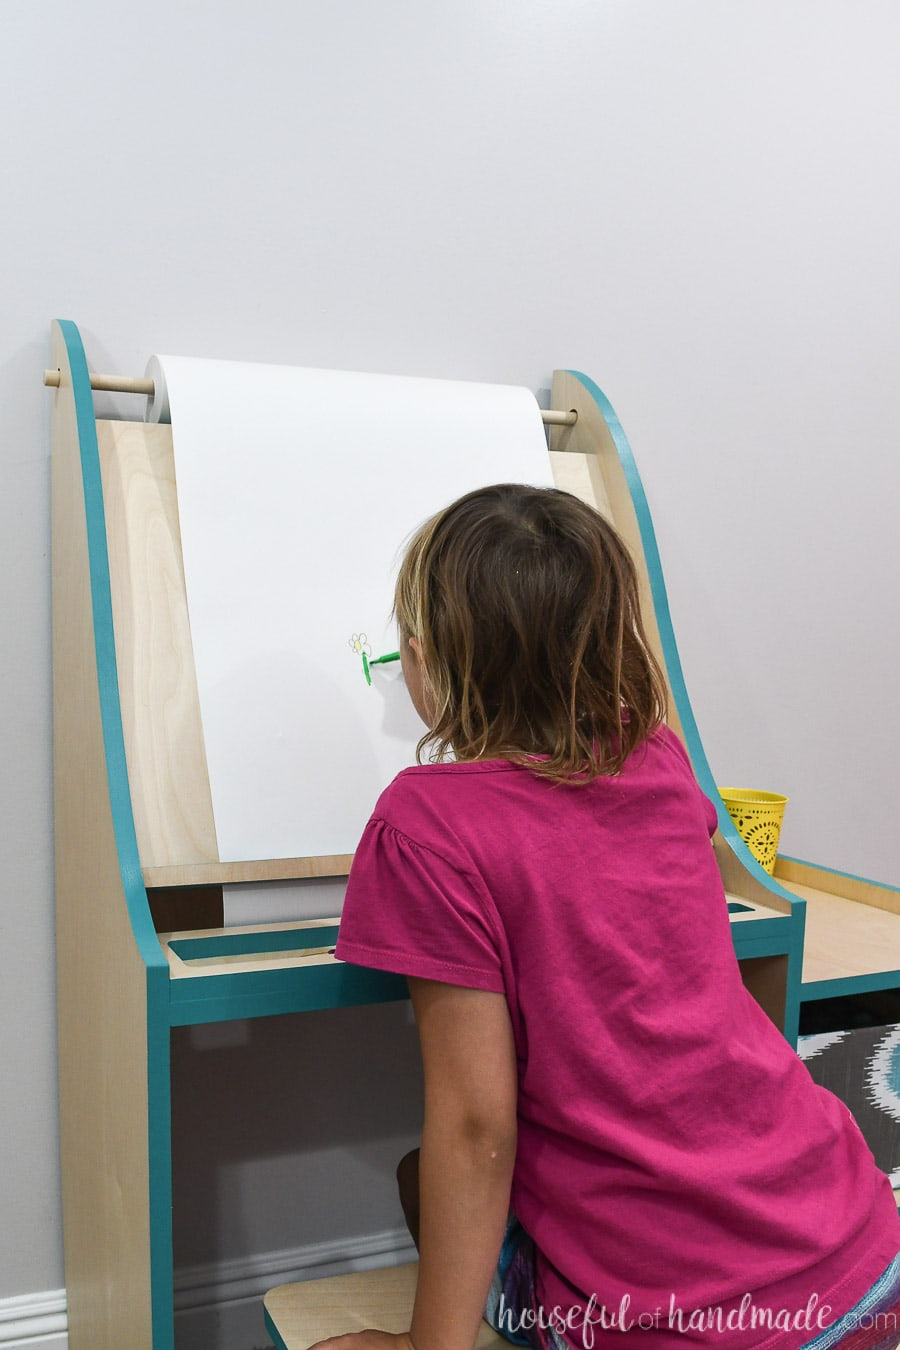 Little girl in pink shirt painting on the DIY art easel using the roll of paper.